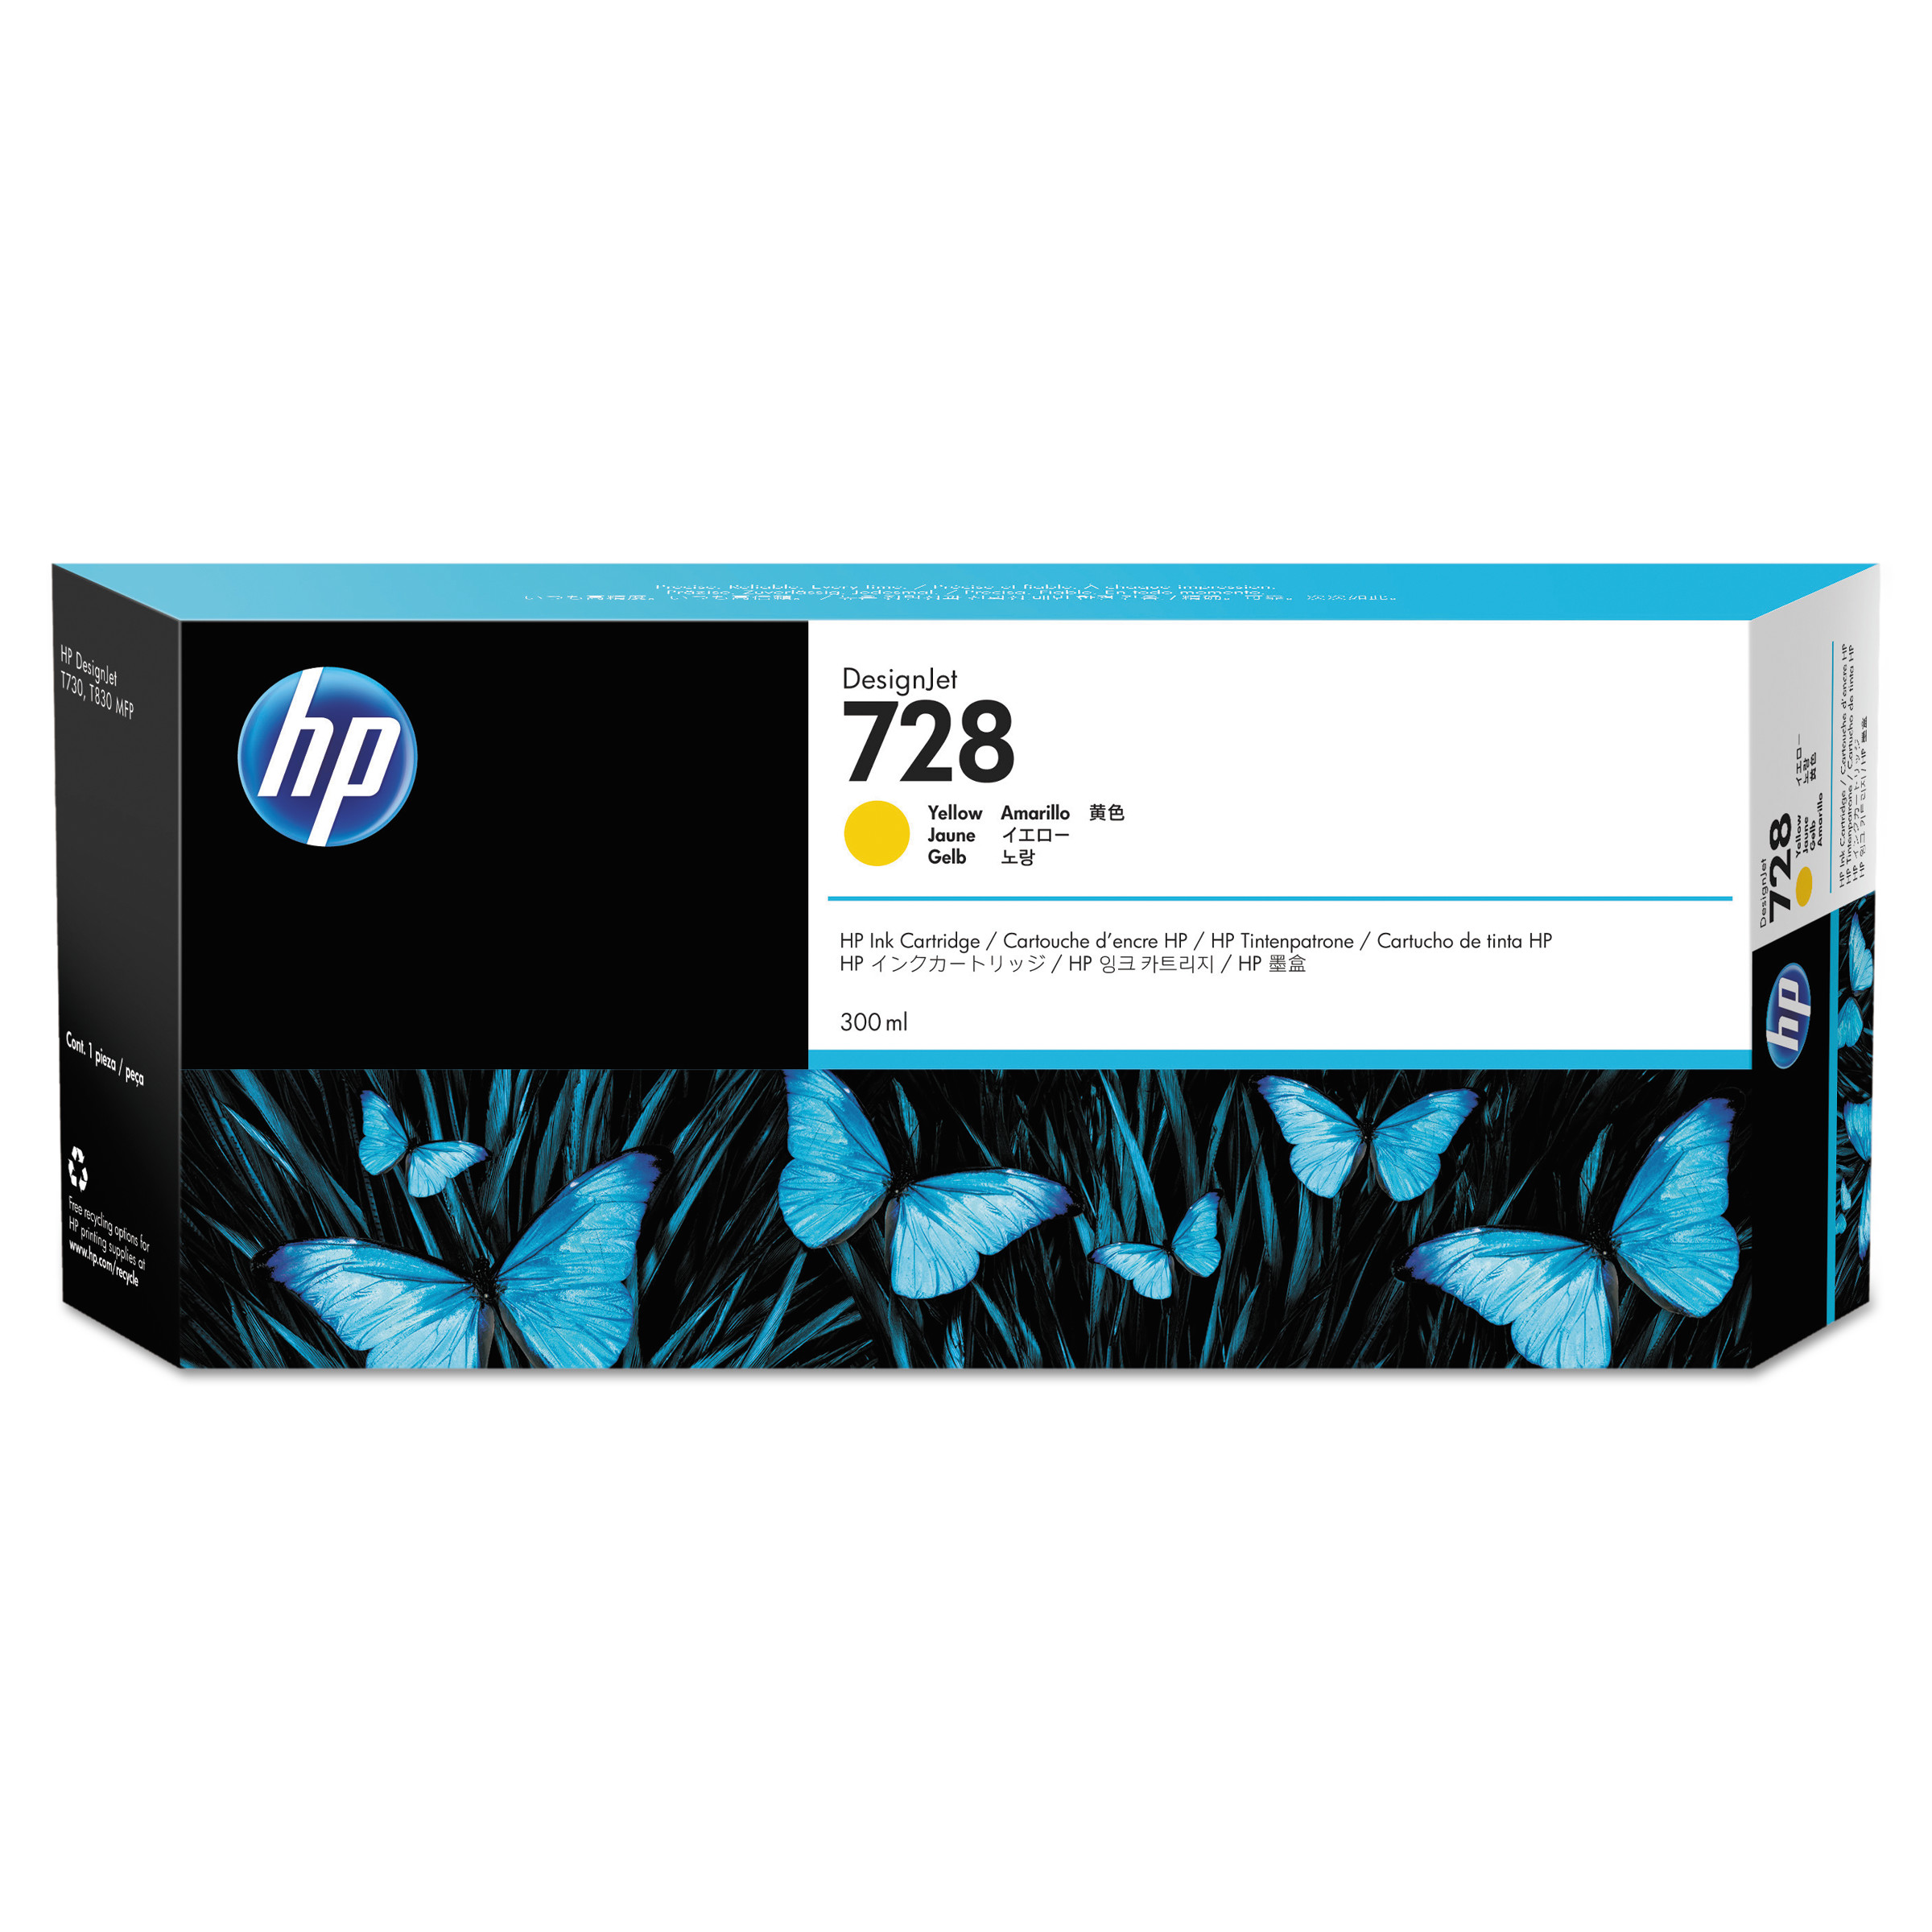 HP 728 (F9K15A) Yellow Original Ink Cartridge